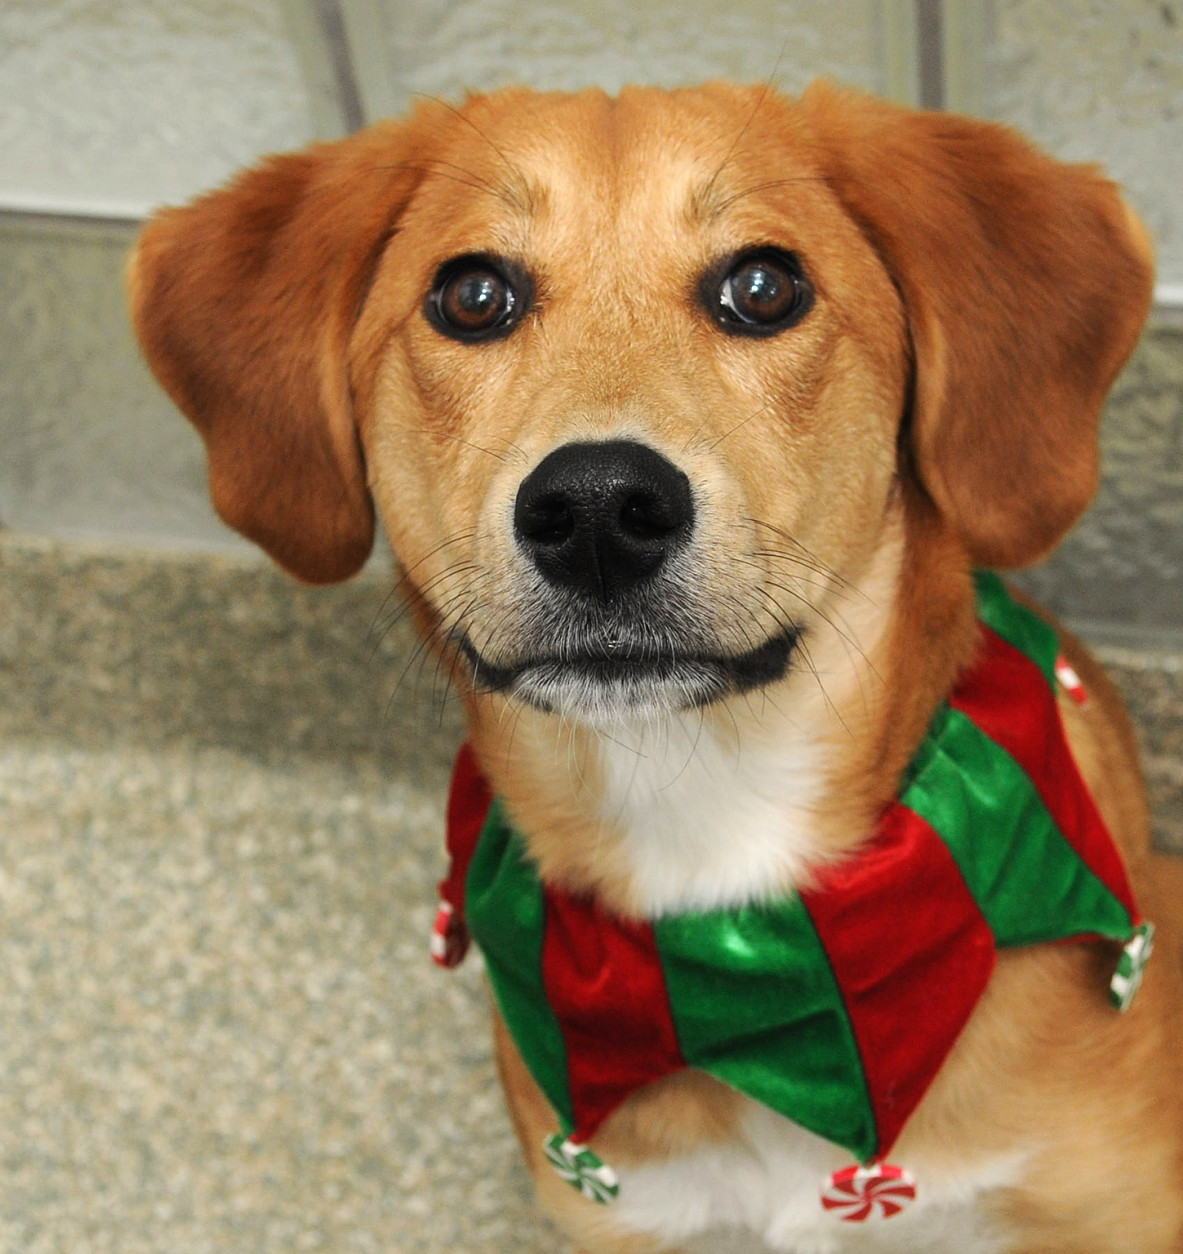 Meadow is a hound/Labrador retriever mix available for adoption at the Washington Animal Rescue League. (Photo Courtesy WARL)